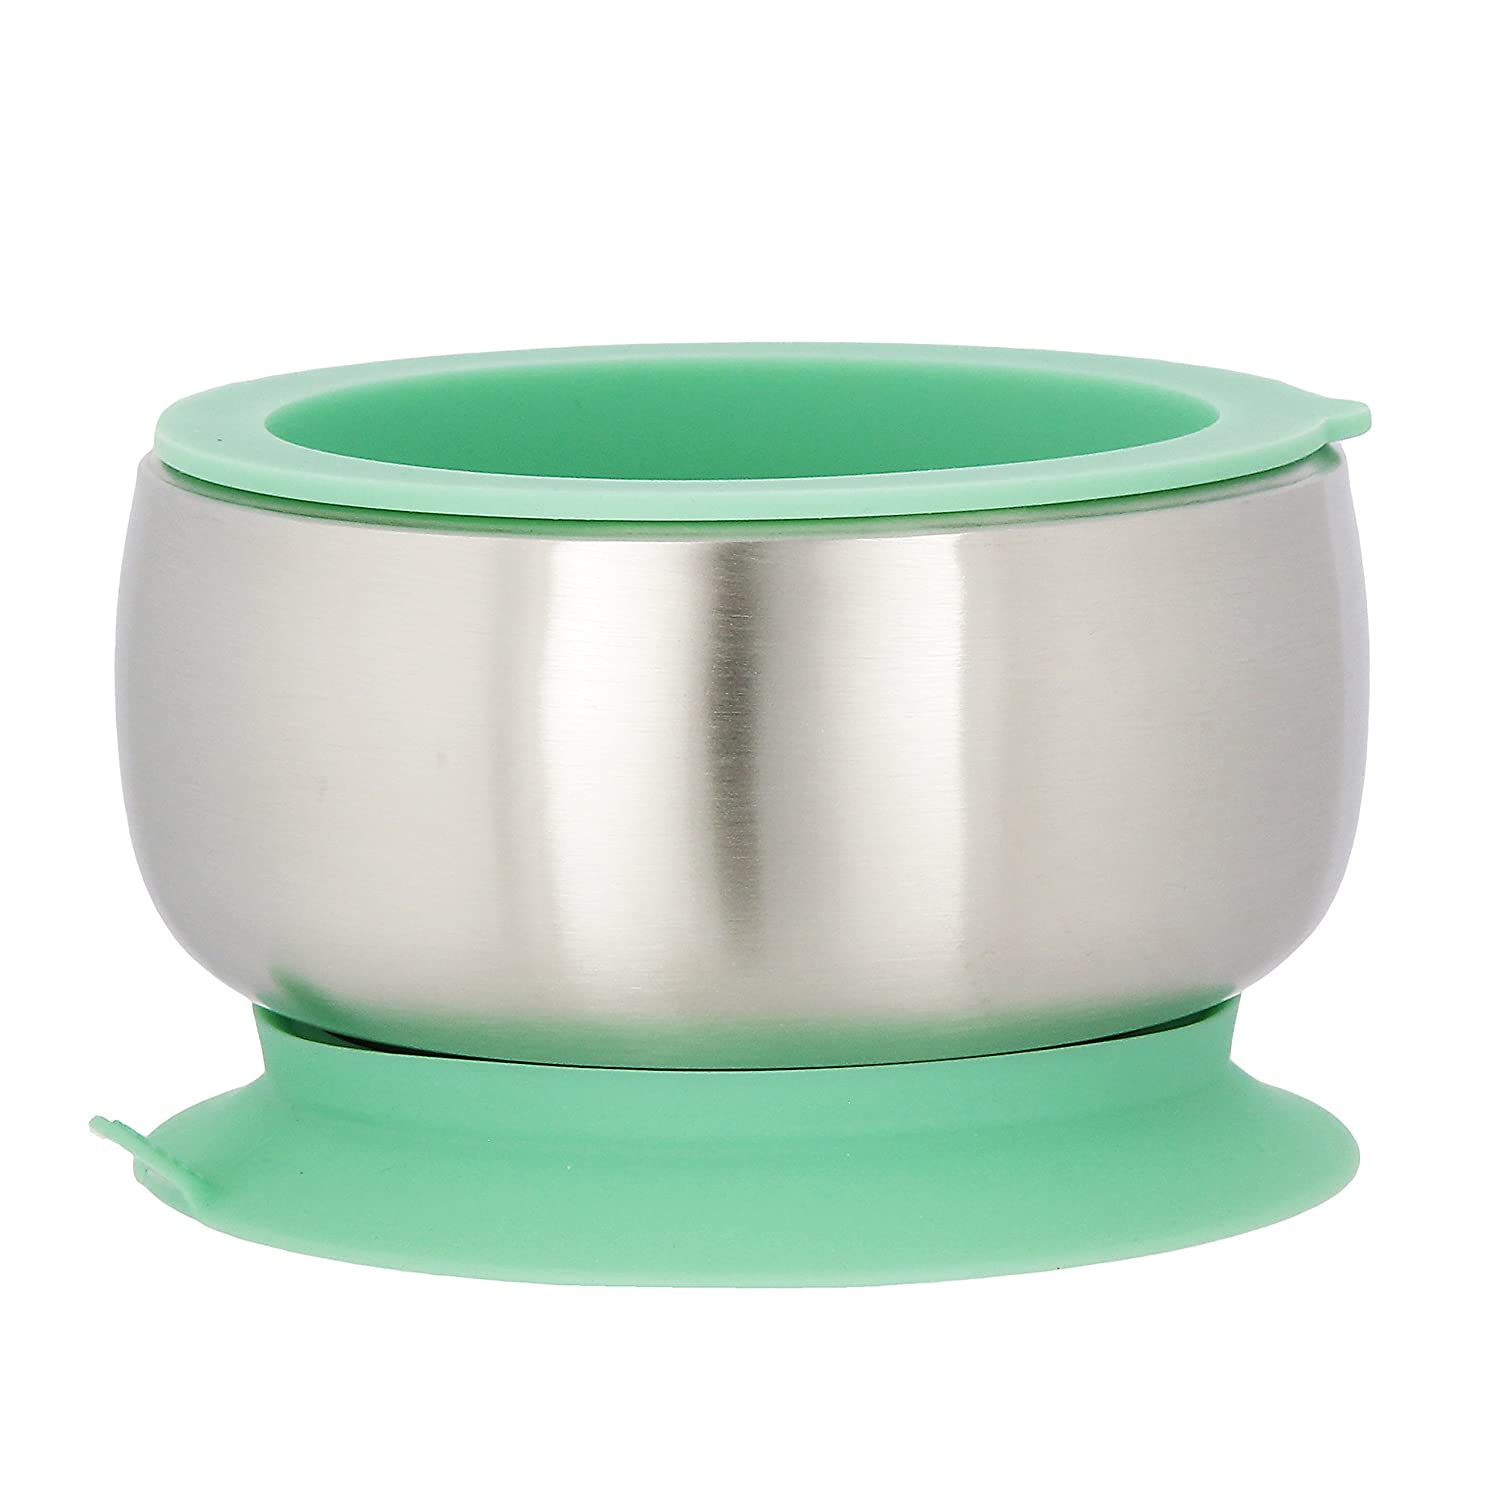 Avanchy Baby Feeding Stainless Steel Spill Proof Stay Put Suction Bowl + Air Tight Lid - Great Baby Gift Set (Green) GBBLS